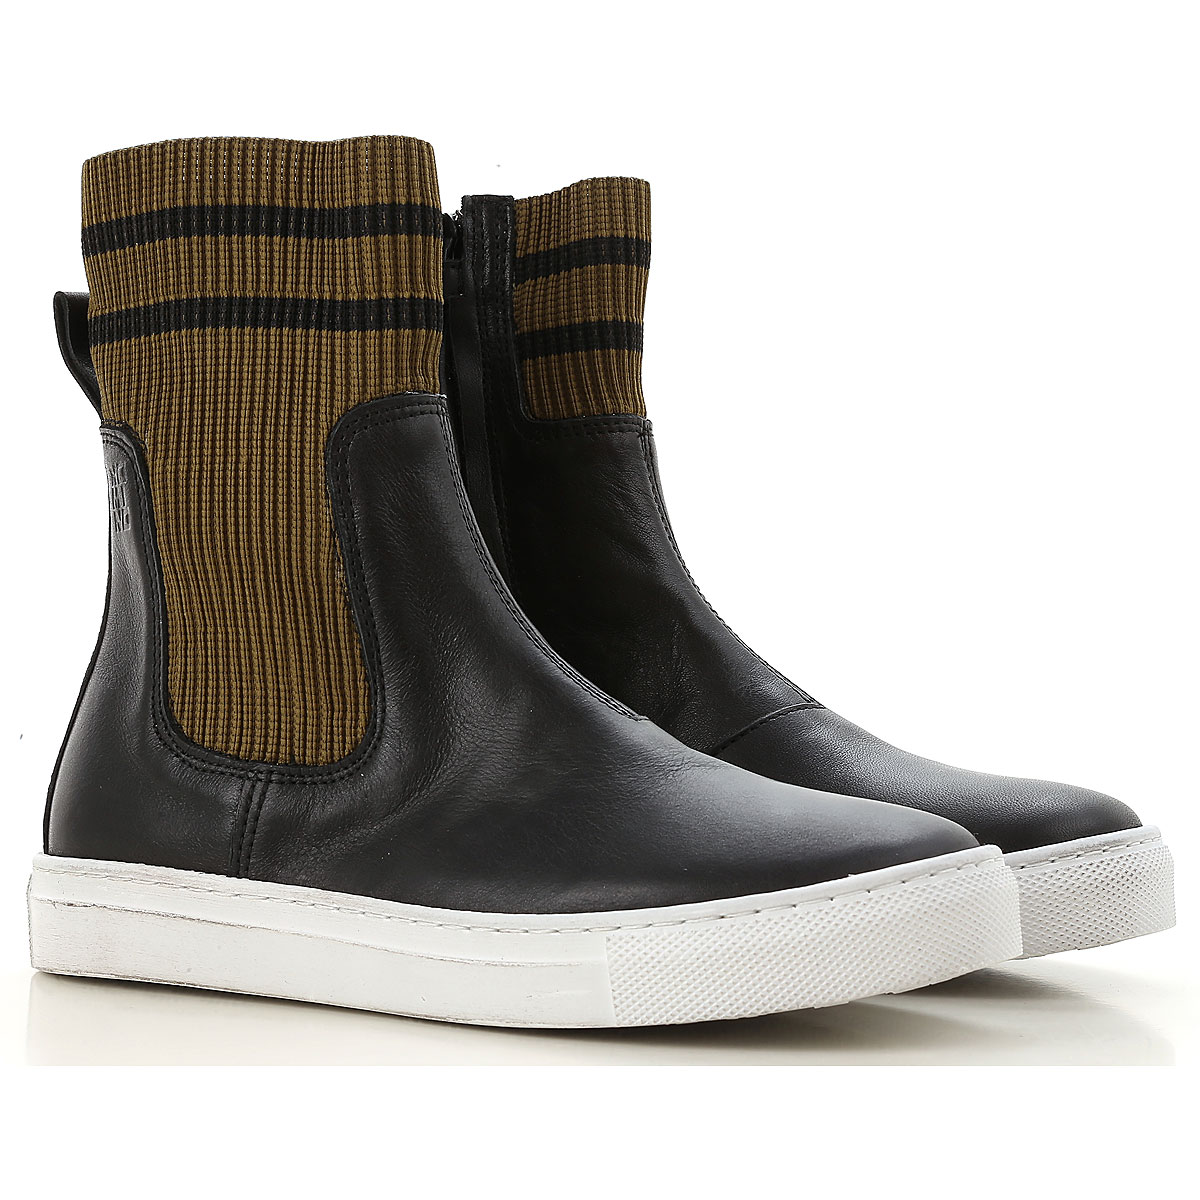 Image of Momino Kids Shoes for Boys, Black, Leather, 2017, 31 32 33 35 36 37 38